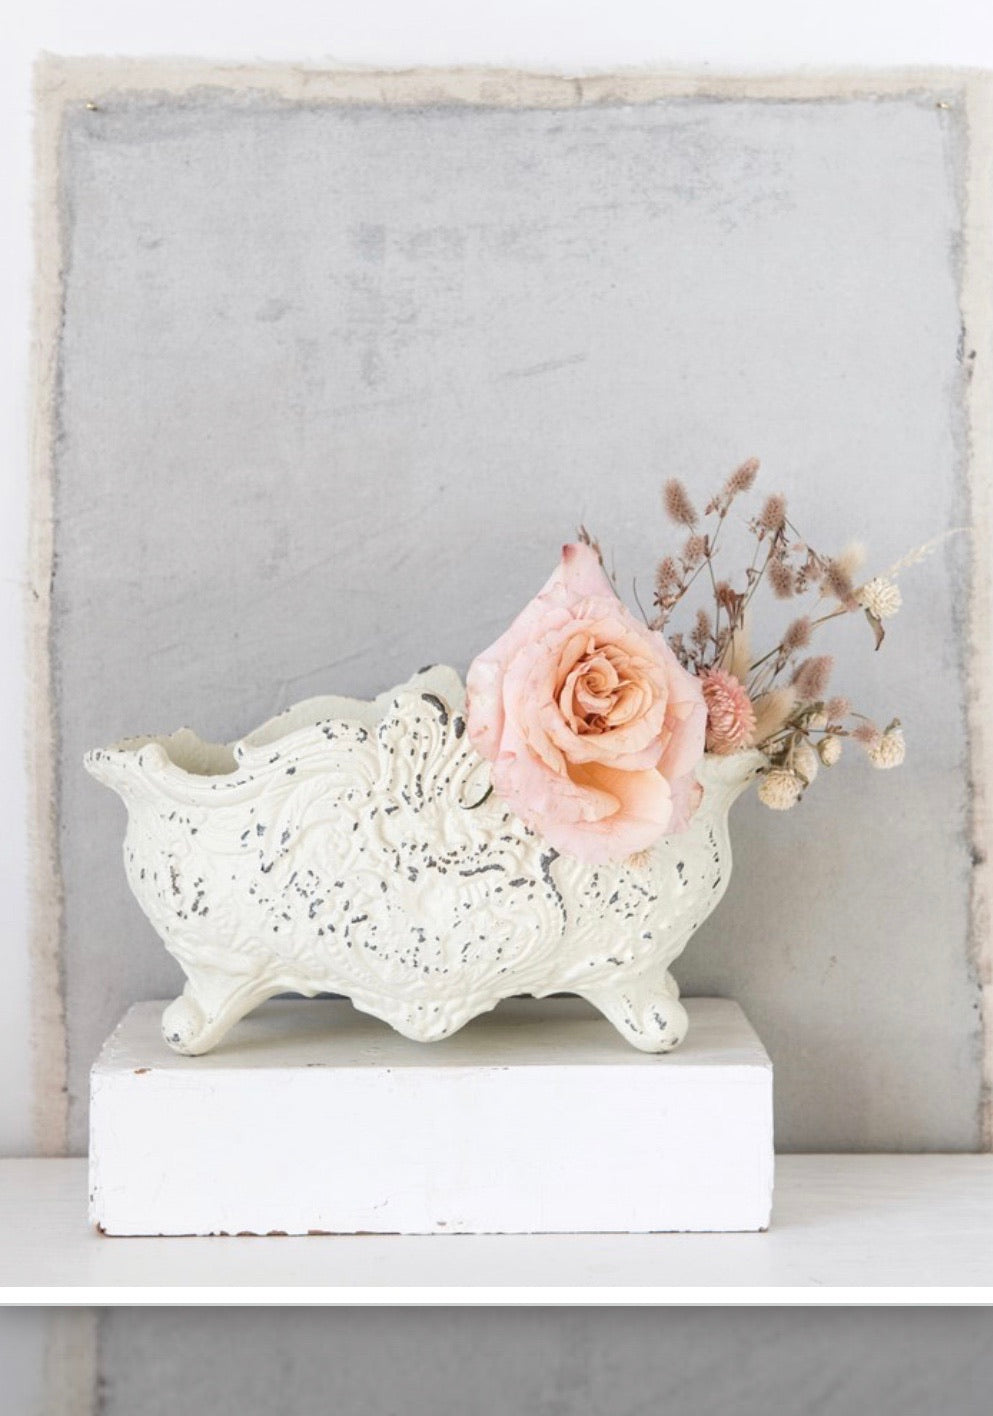 Distressed White Cast Iron Urn